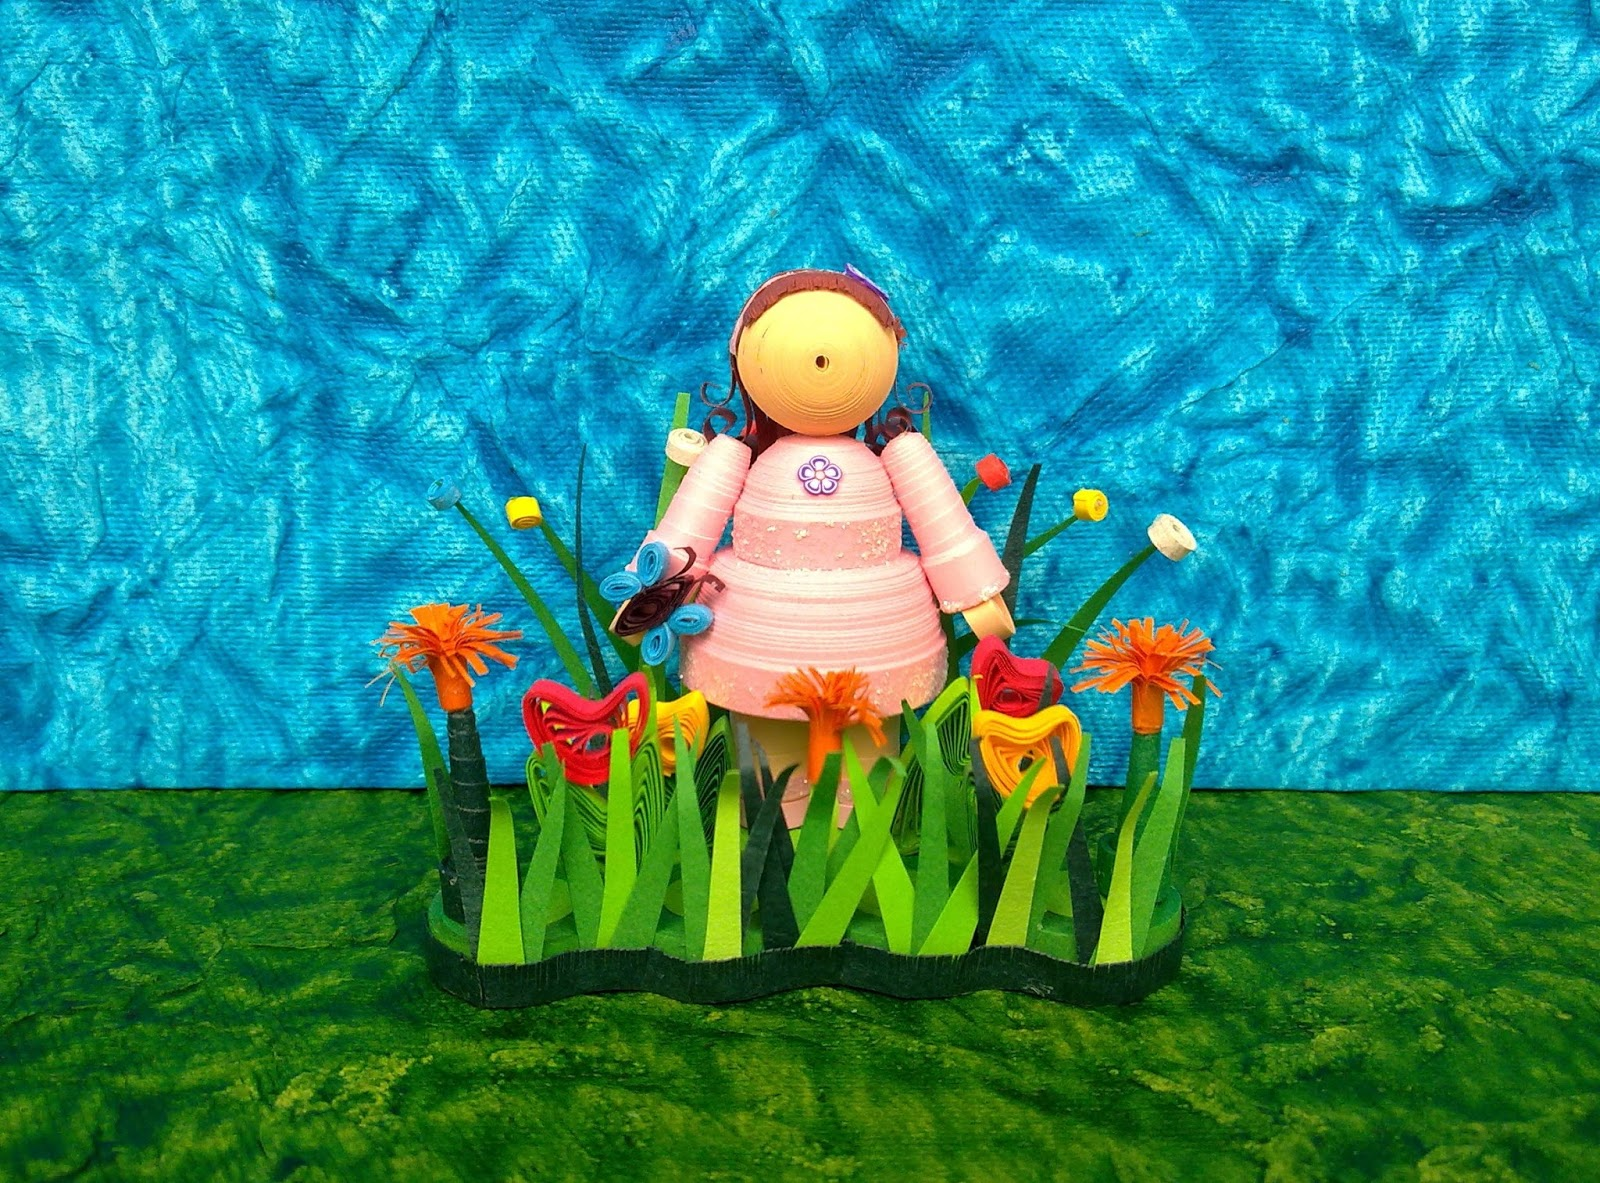 wondersofpaper quilled doll in the garden - The Doll In The Garden